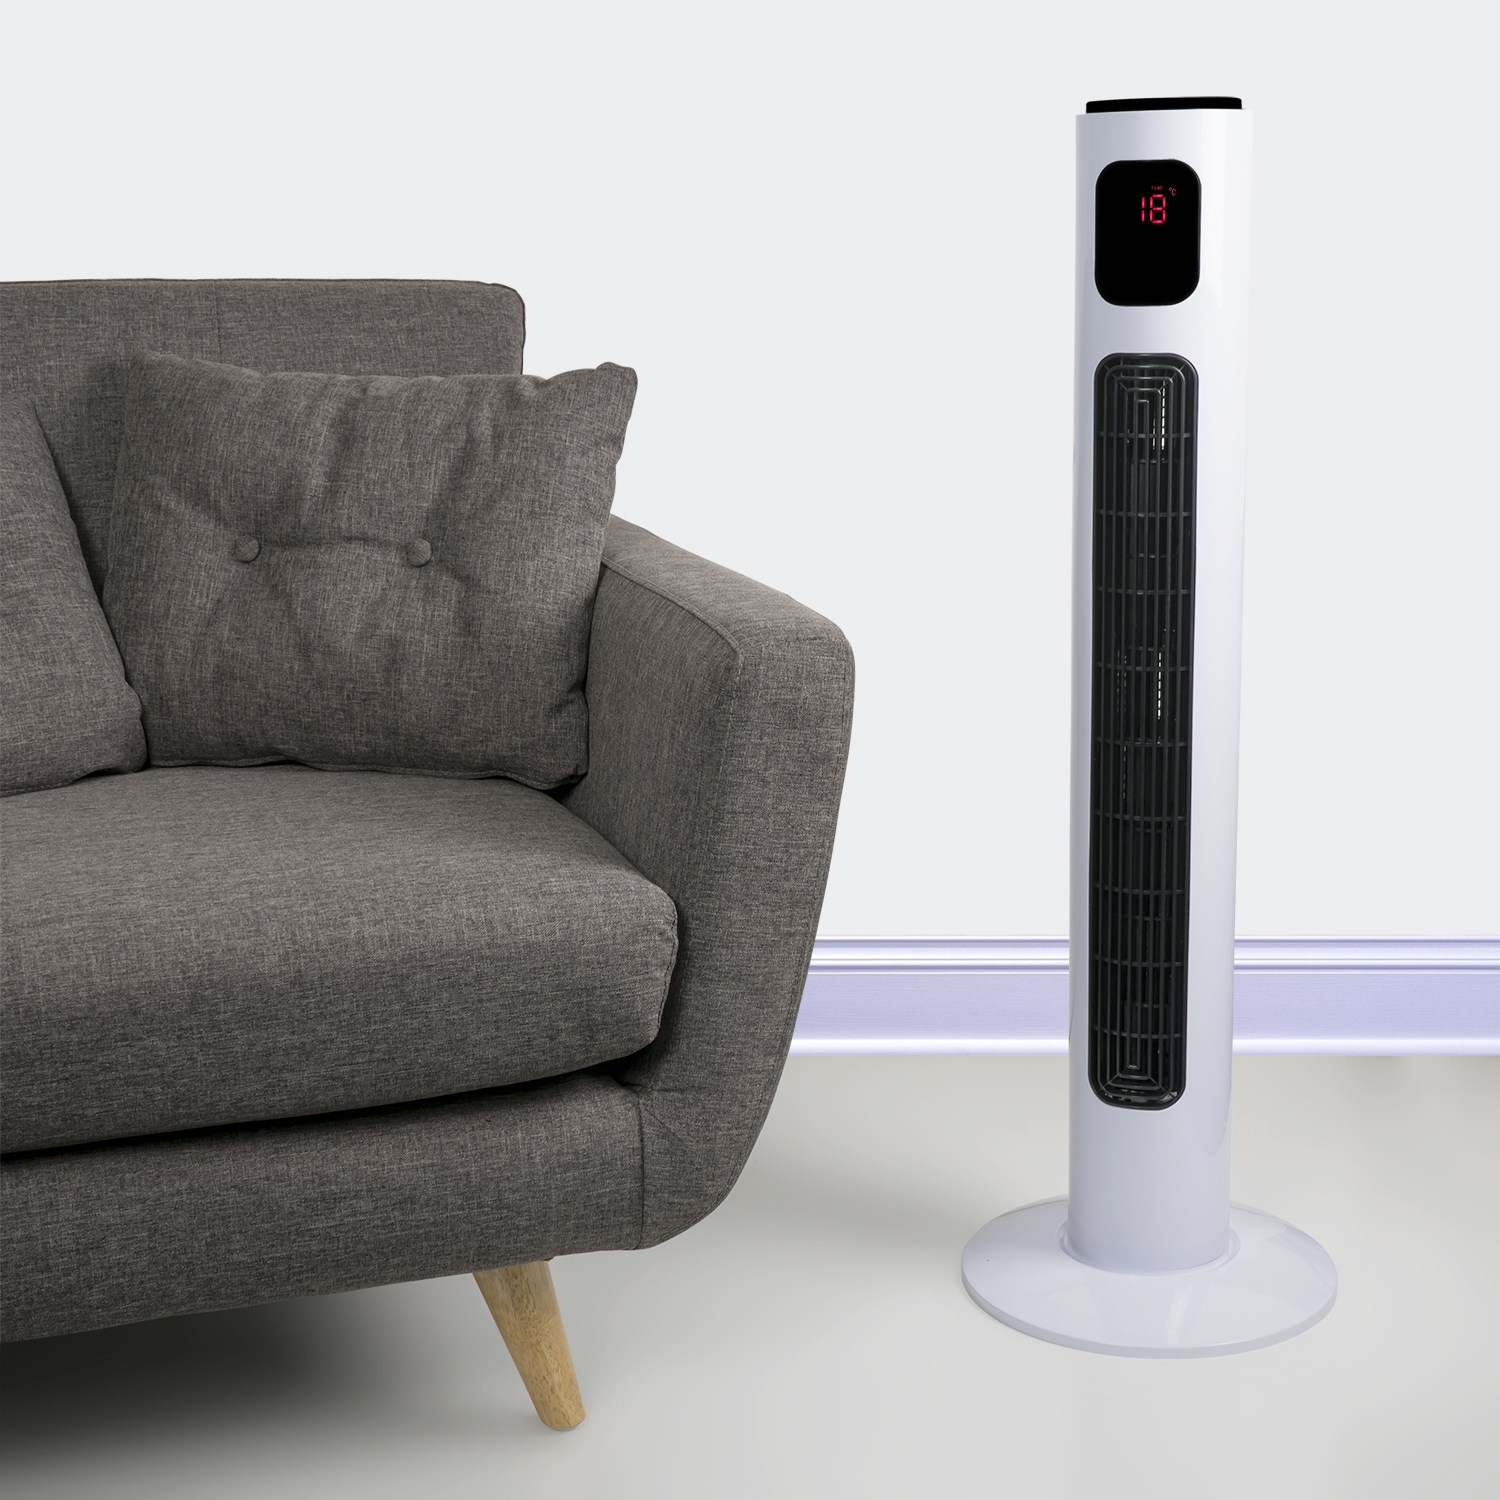 Lightweight Tower Fan Oscillating Cooling Quiet with Remote Control